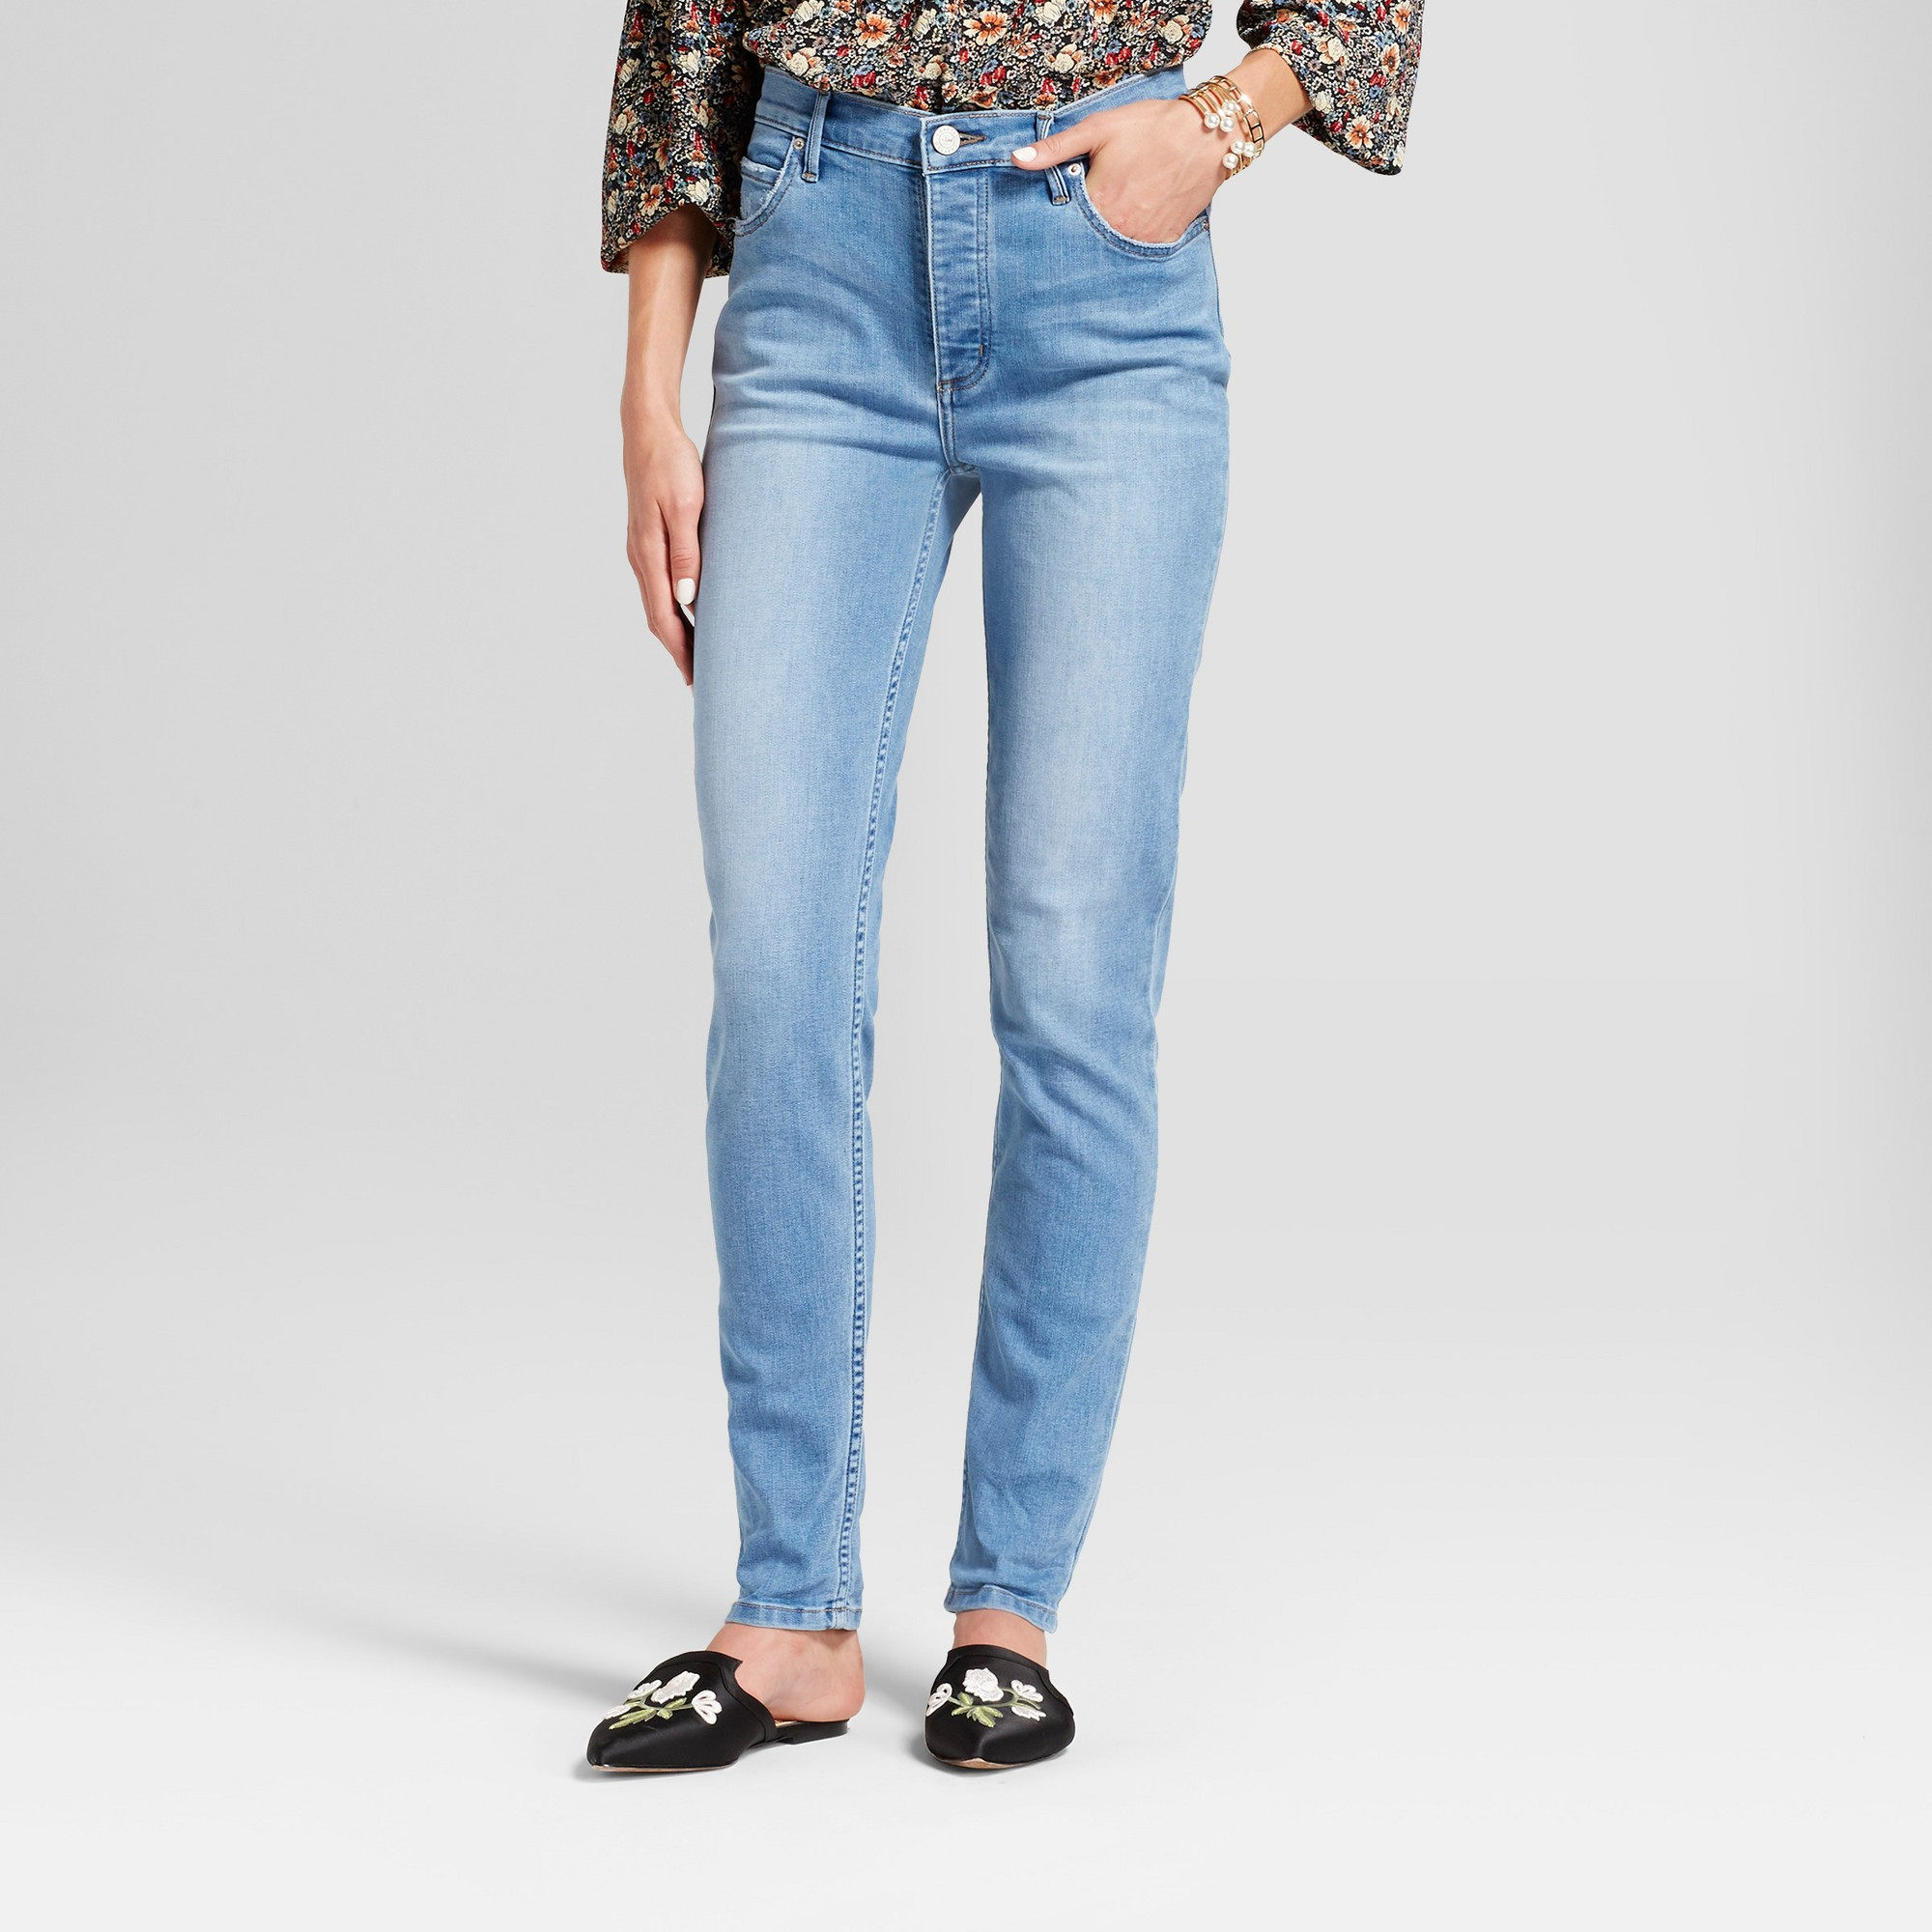 c3c87756 Women's High Rise Vintage Button Fly Jeans - Crafted by Lee Light Wash 16  Short